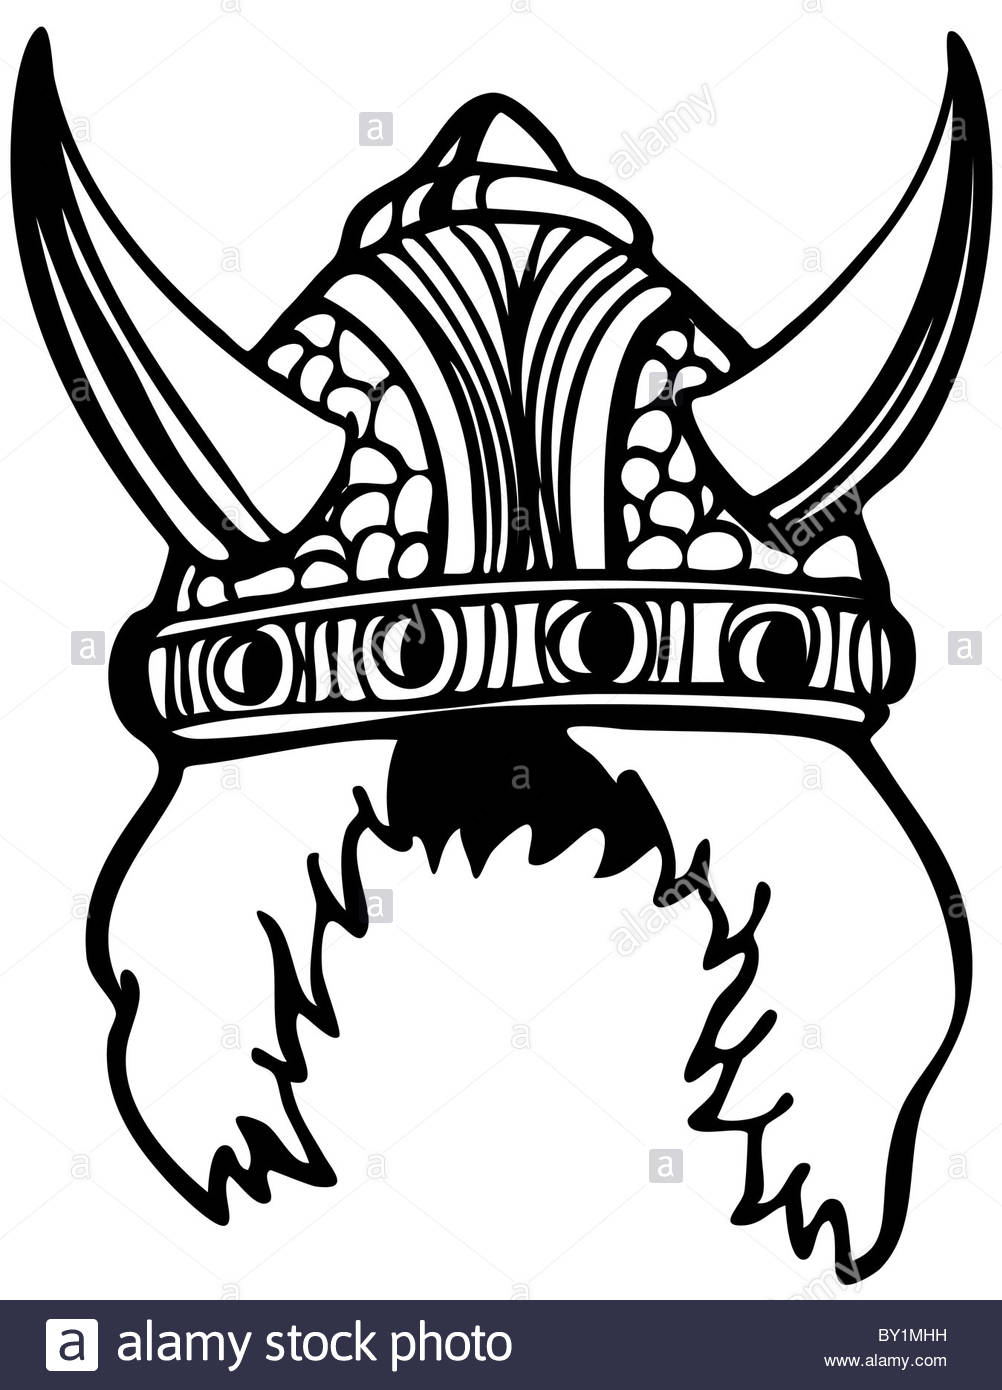 1002x1390 An Image Of A Viking Helmet Stock Photo, Royalty Free Image